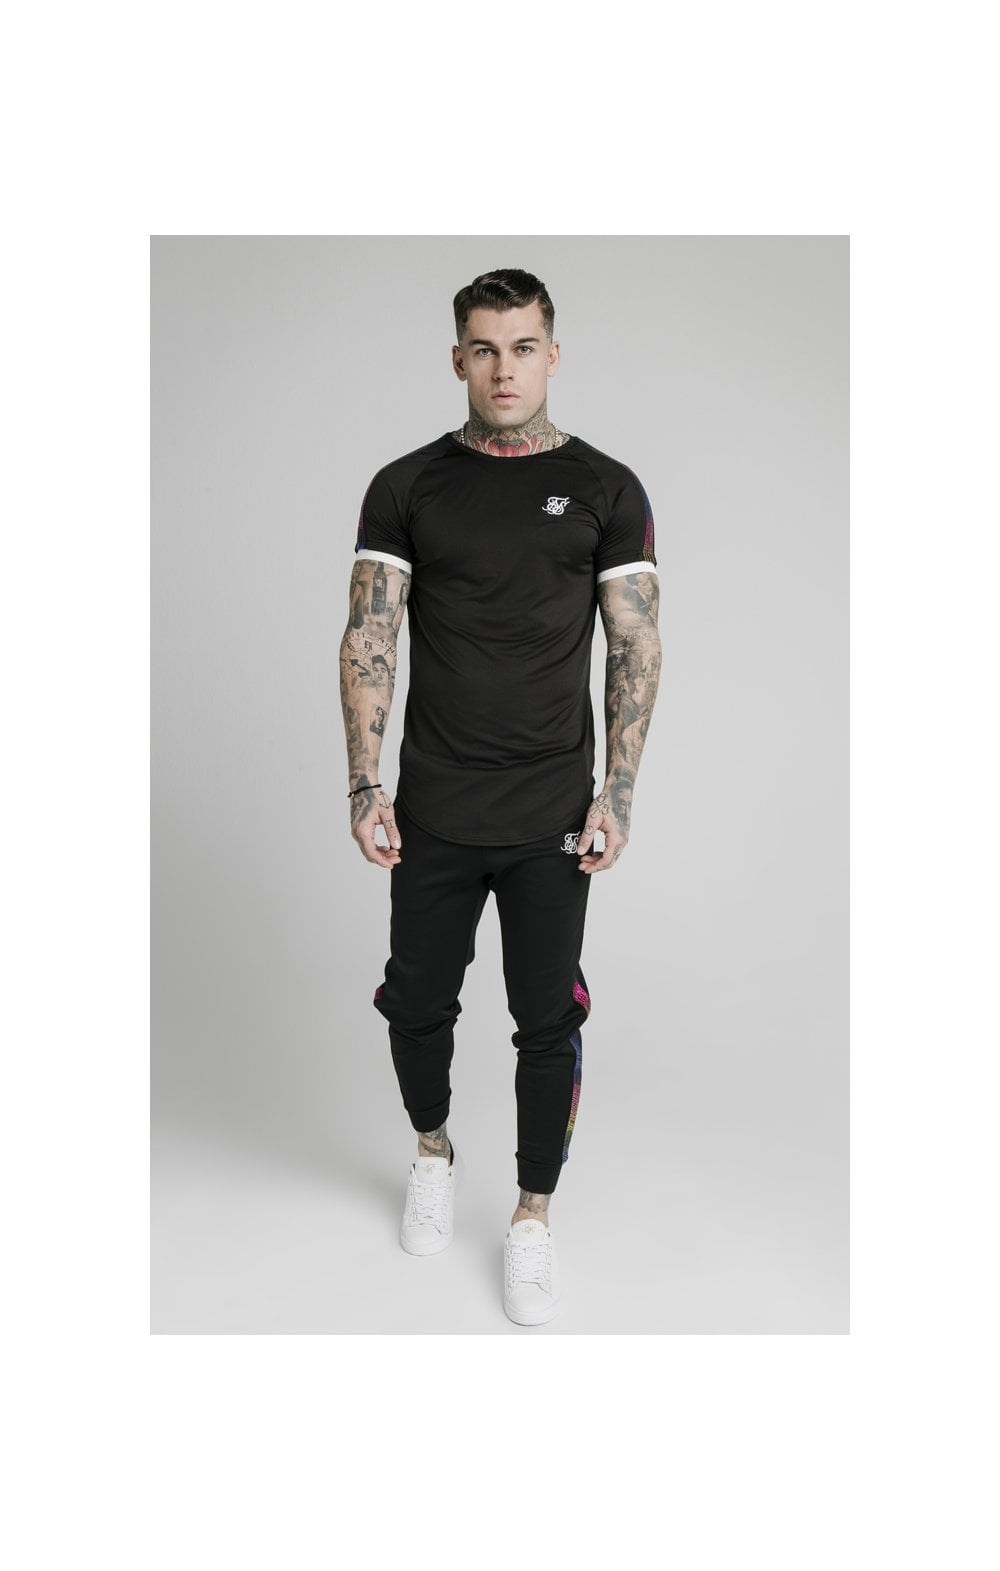 SikSilk S/S Fade Runner Tech Tee - Black (3)